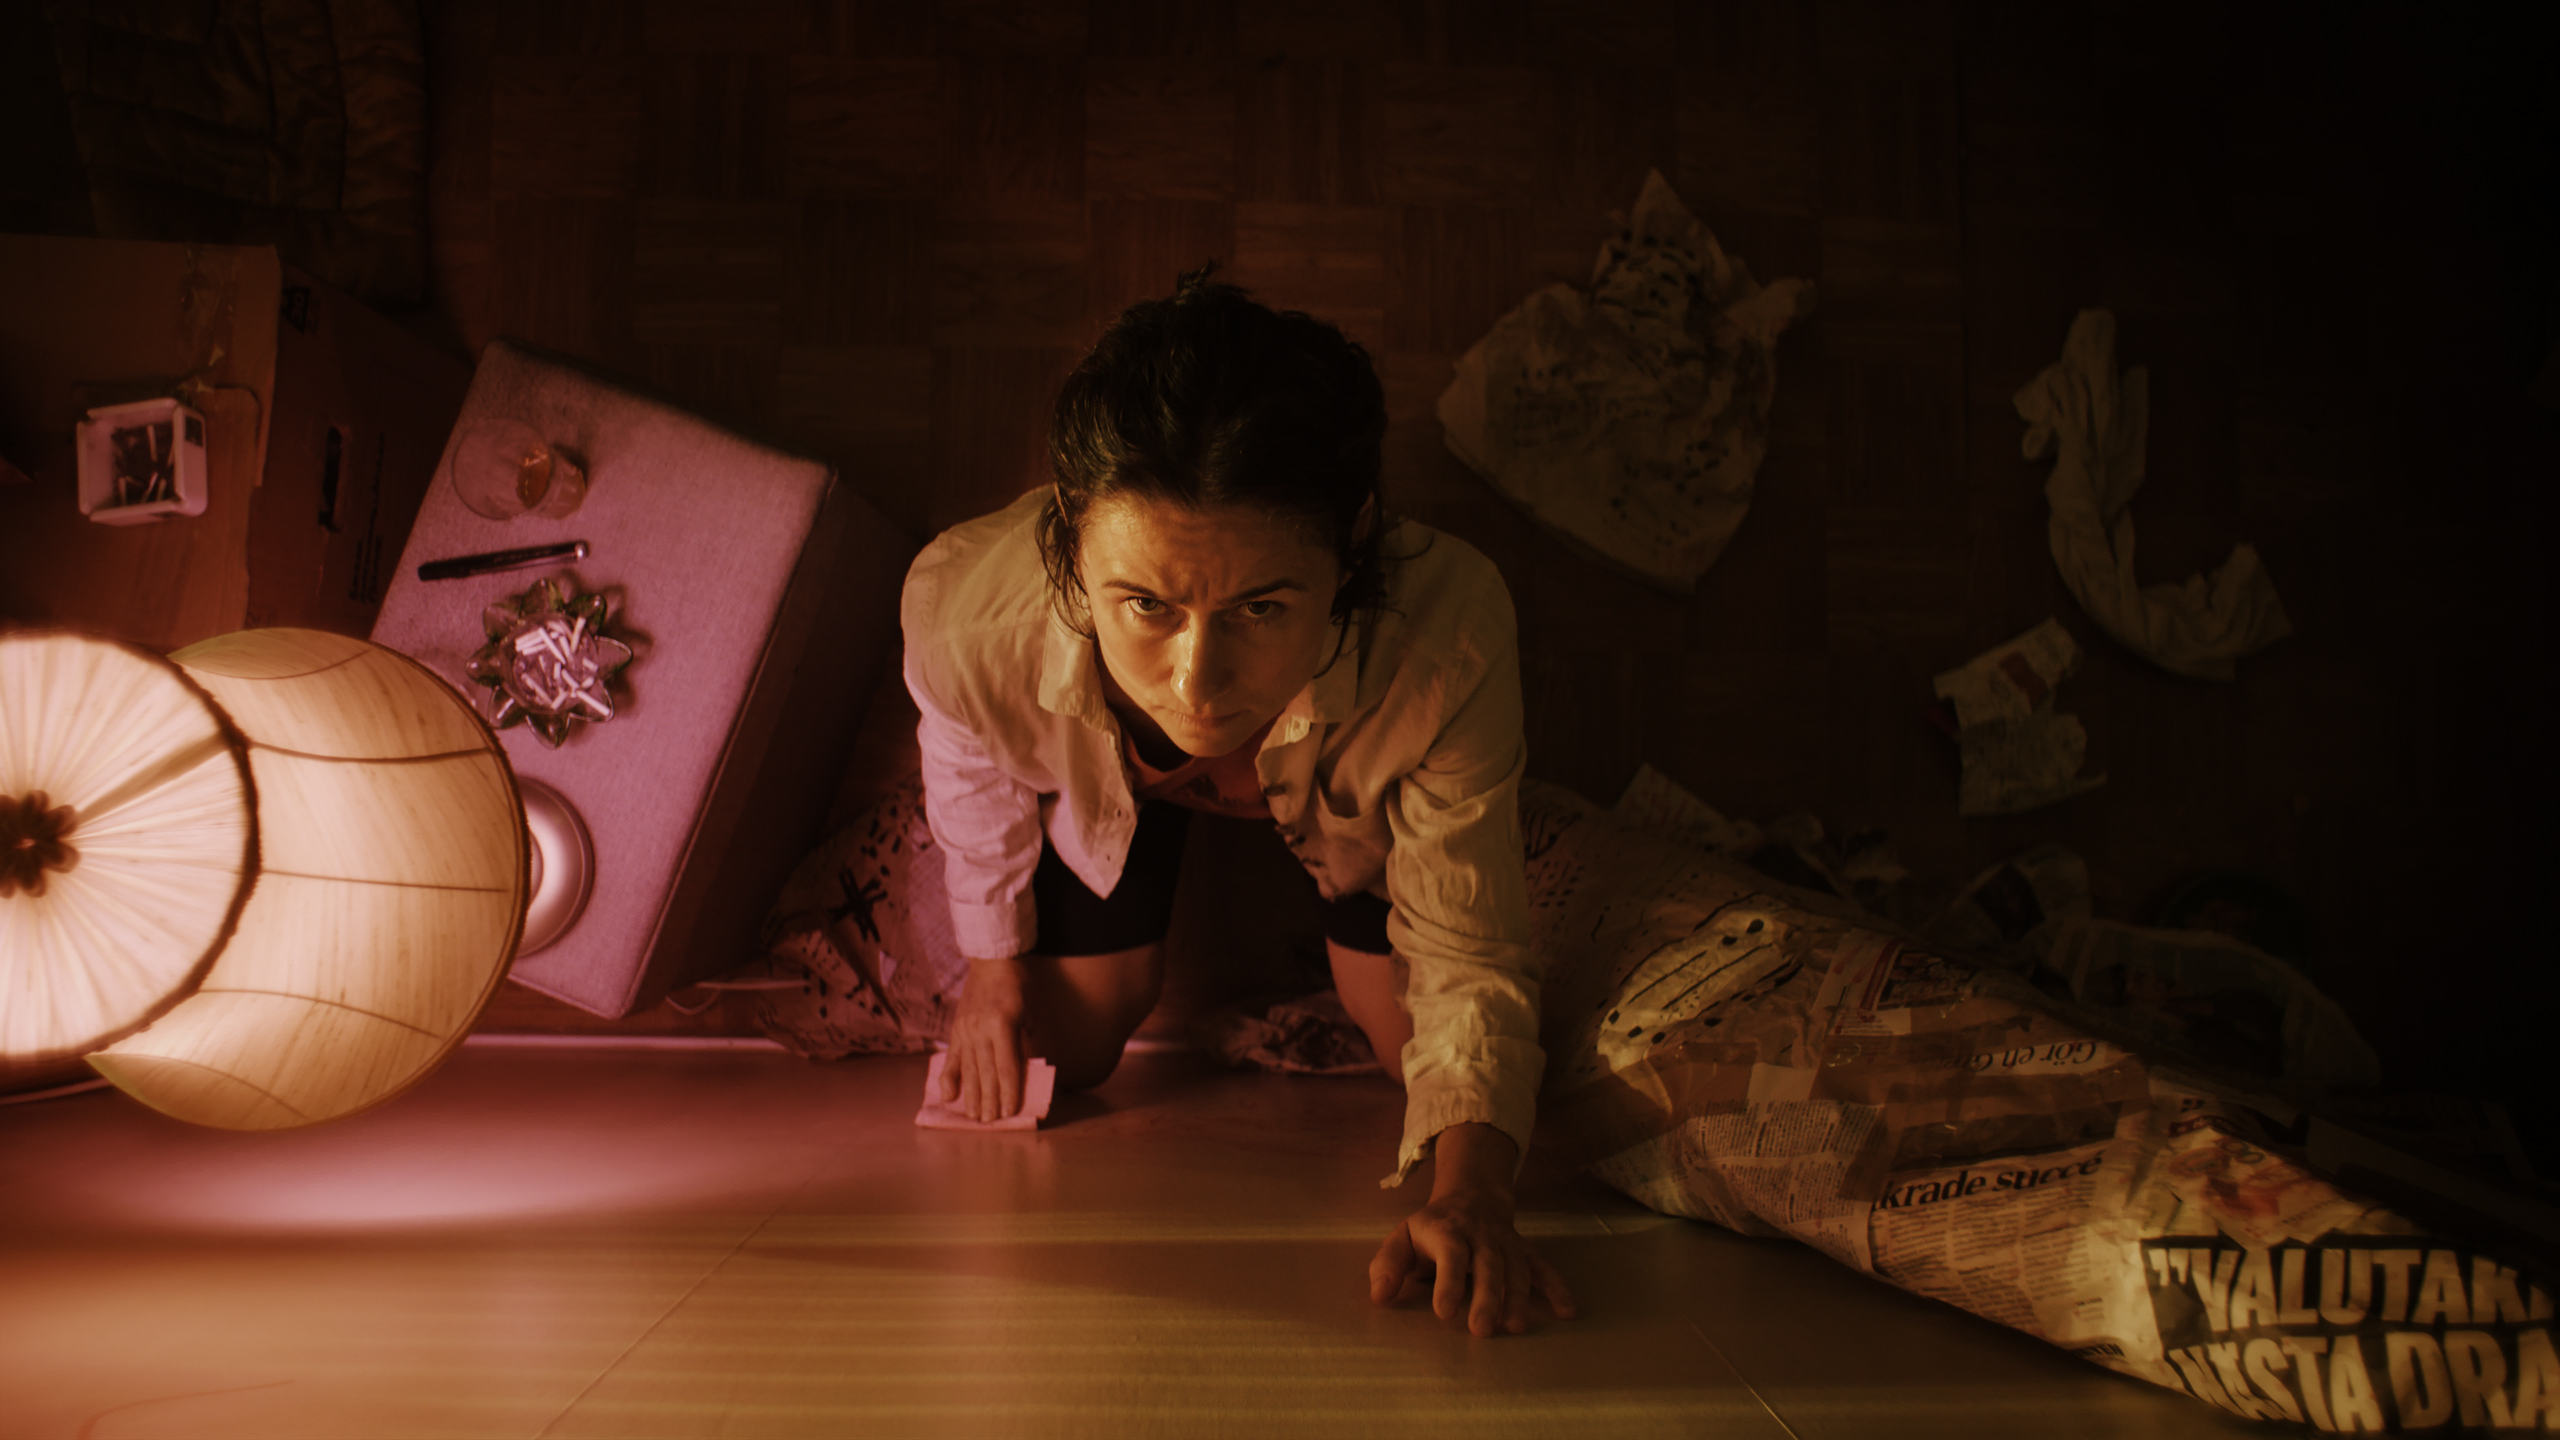 Knocking presents a war between Molly's (Cecilia Milocco) resilience and society's churn of normalized silencing.